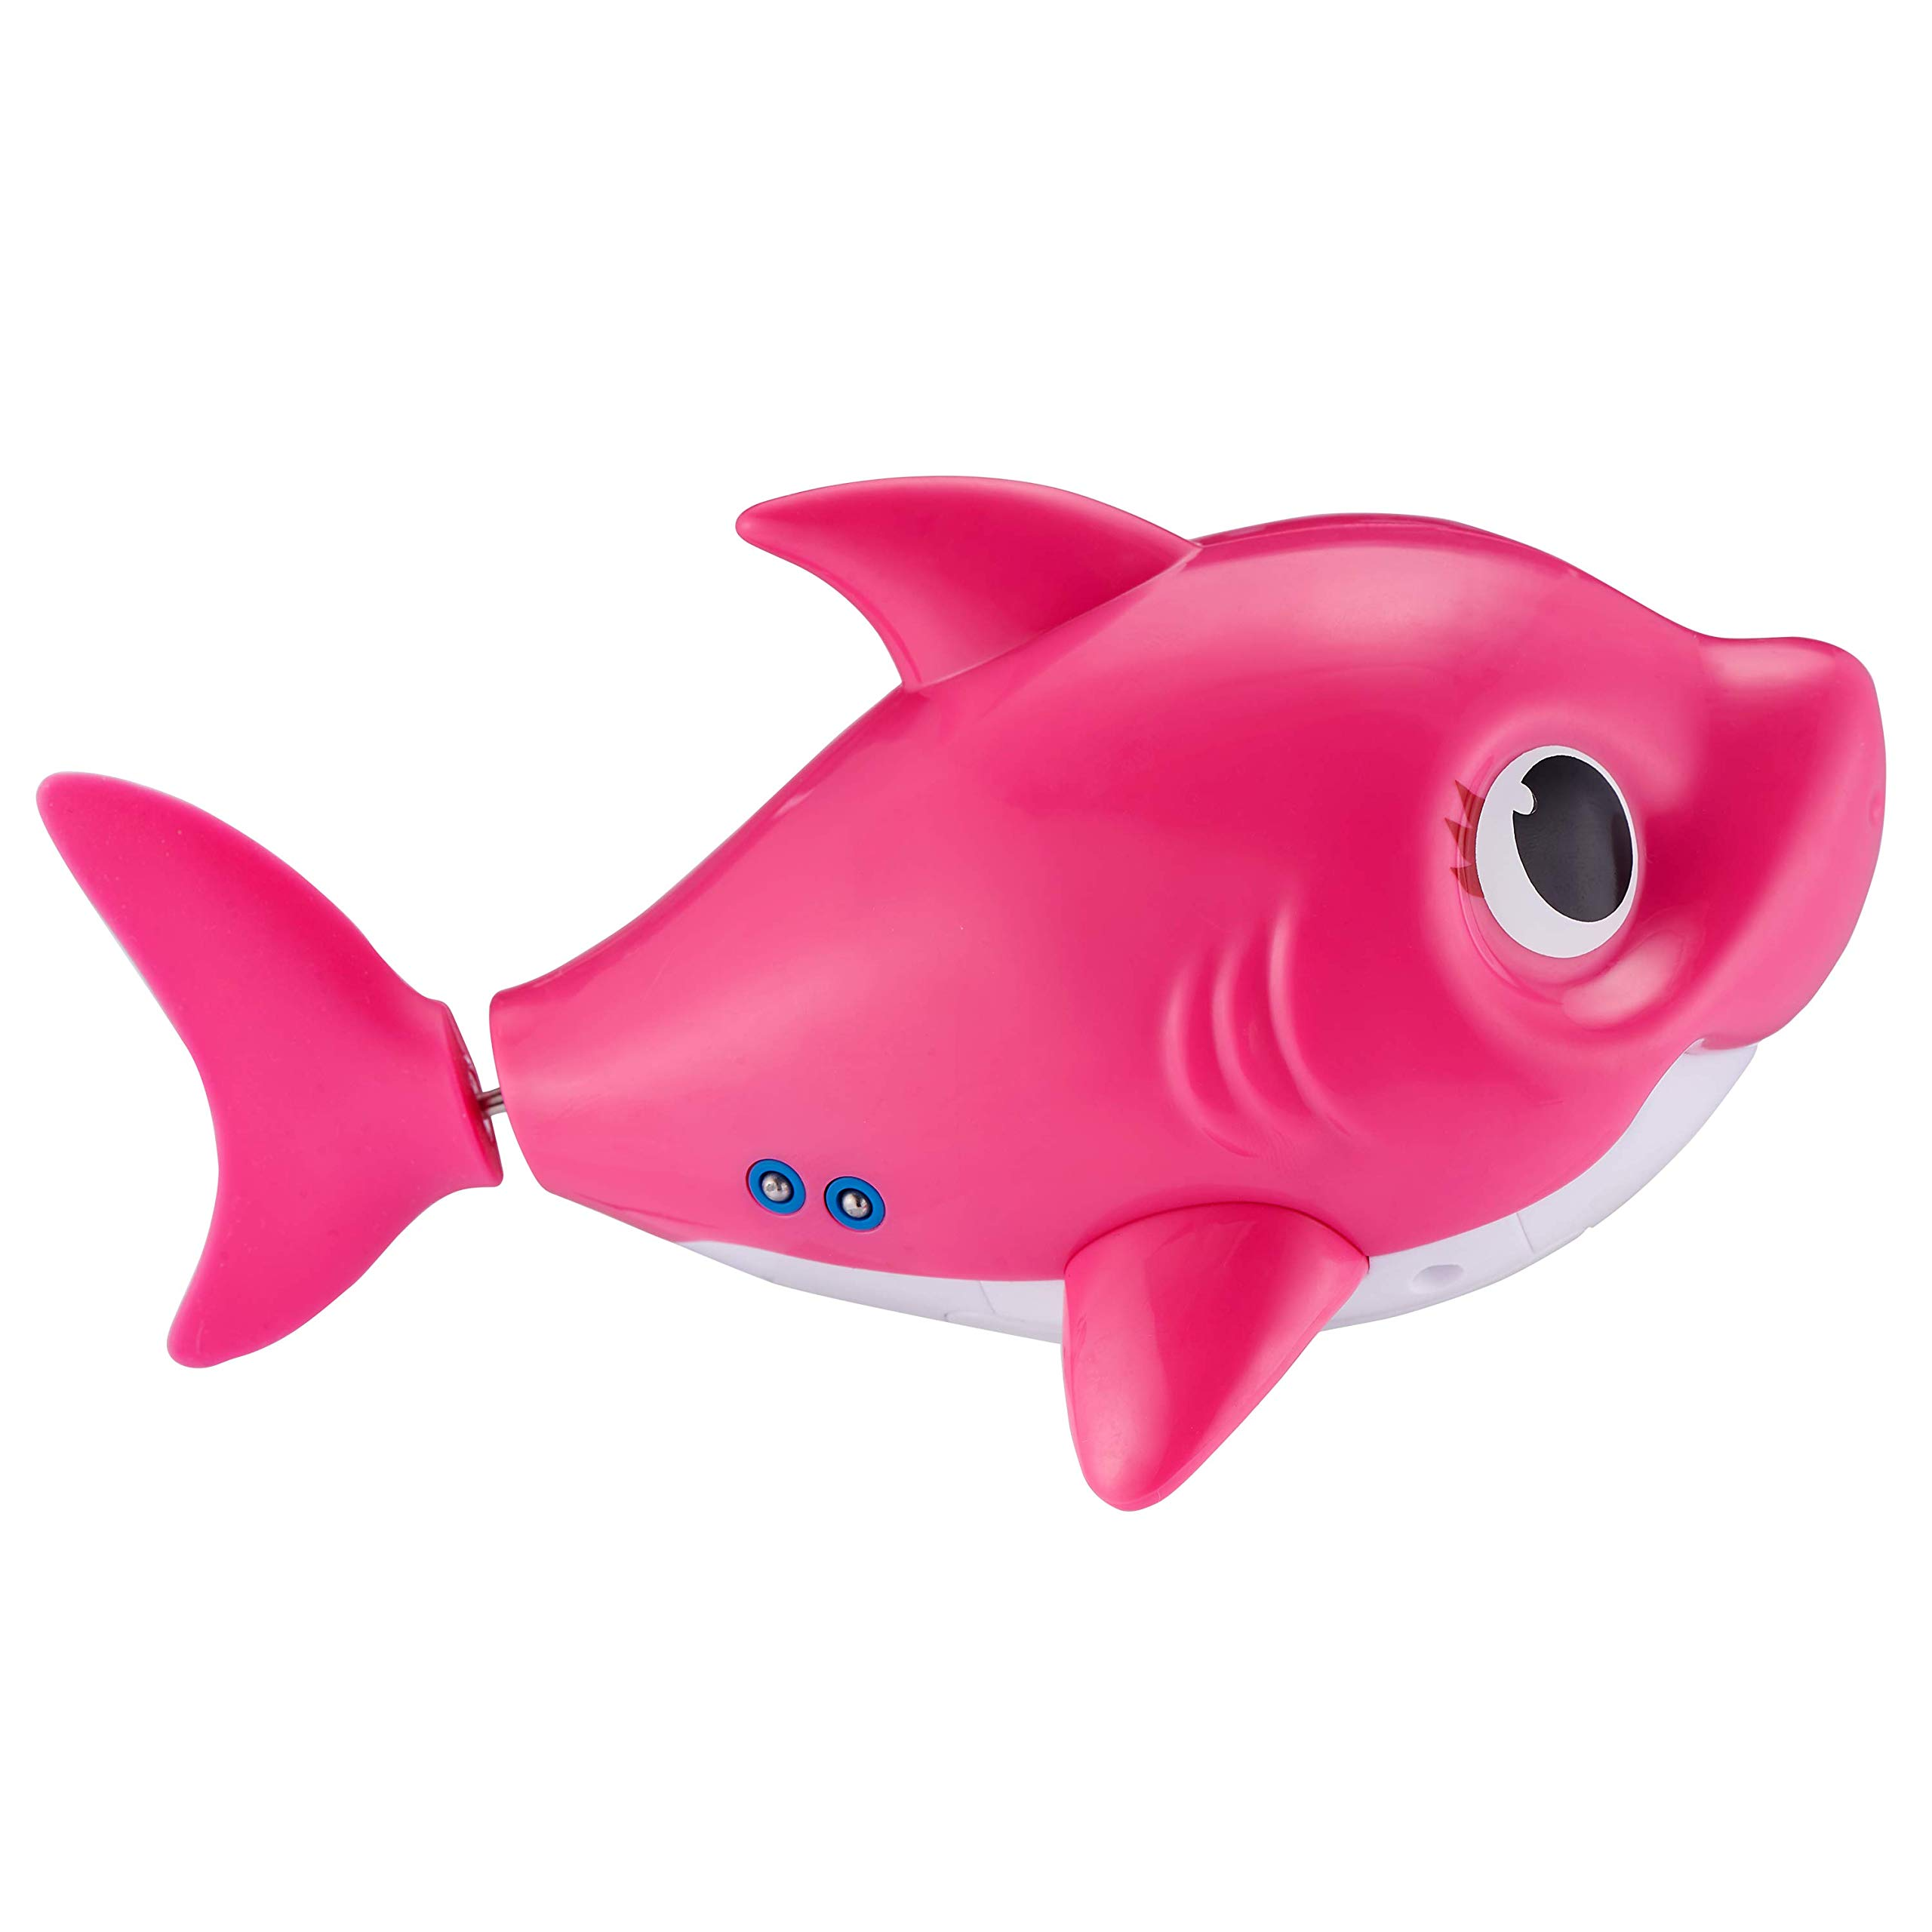 Robo Alive Junior Baby Shark Battery-Powered Sing and Swim Bath Toy by ZURU - Mommy Shark (Pink) by Robo Alive Junior (Image #4)